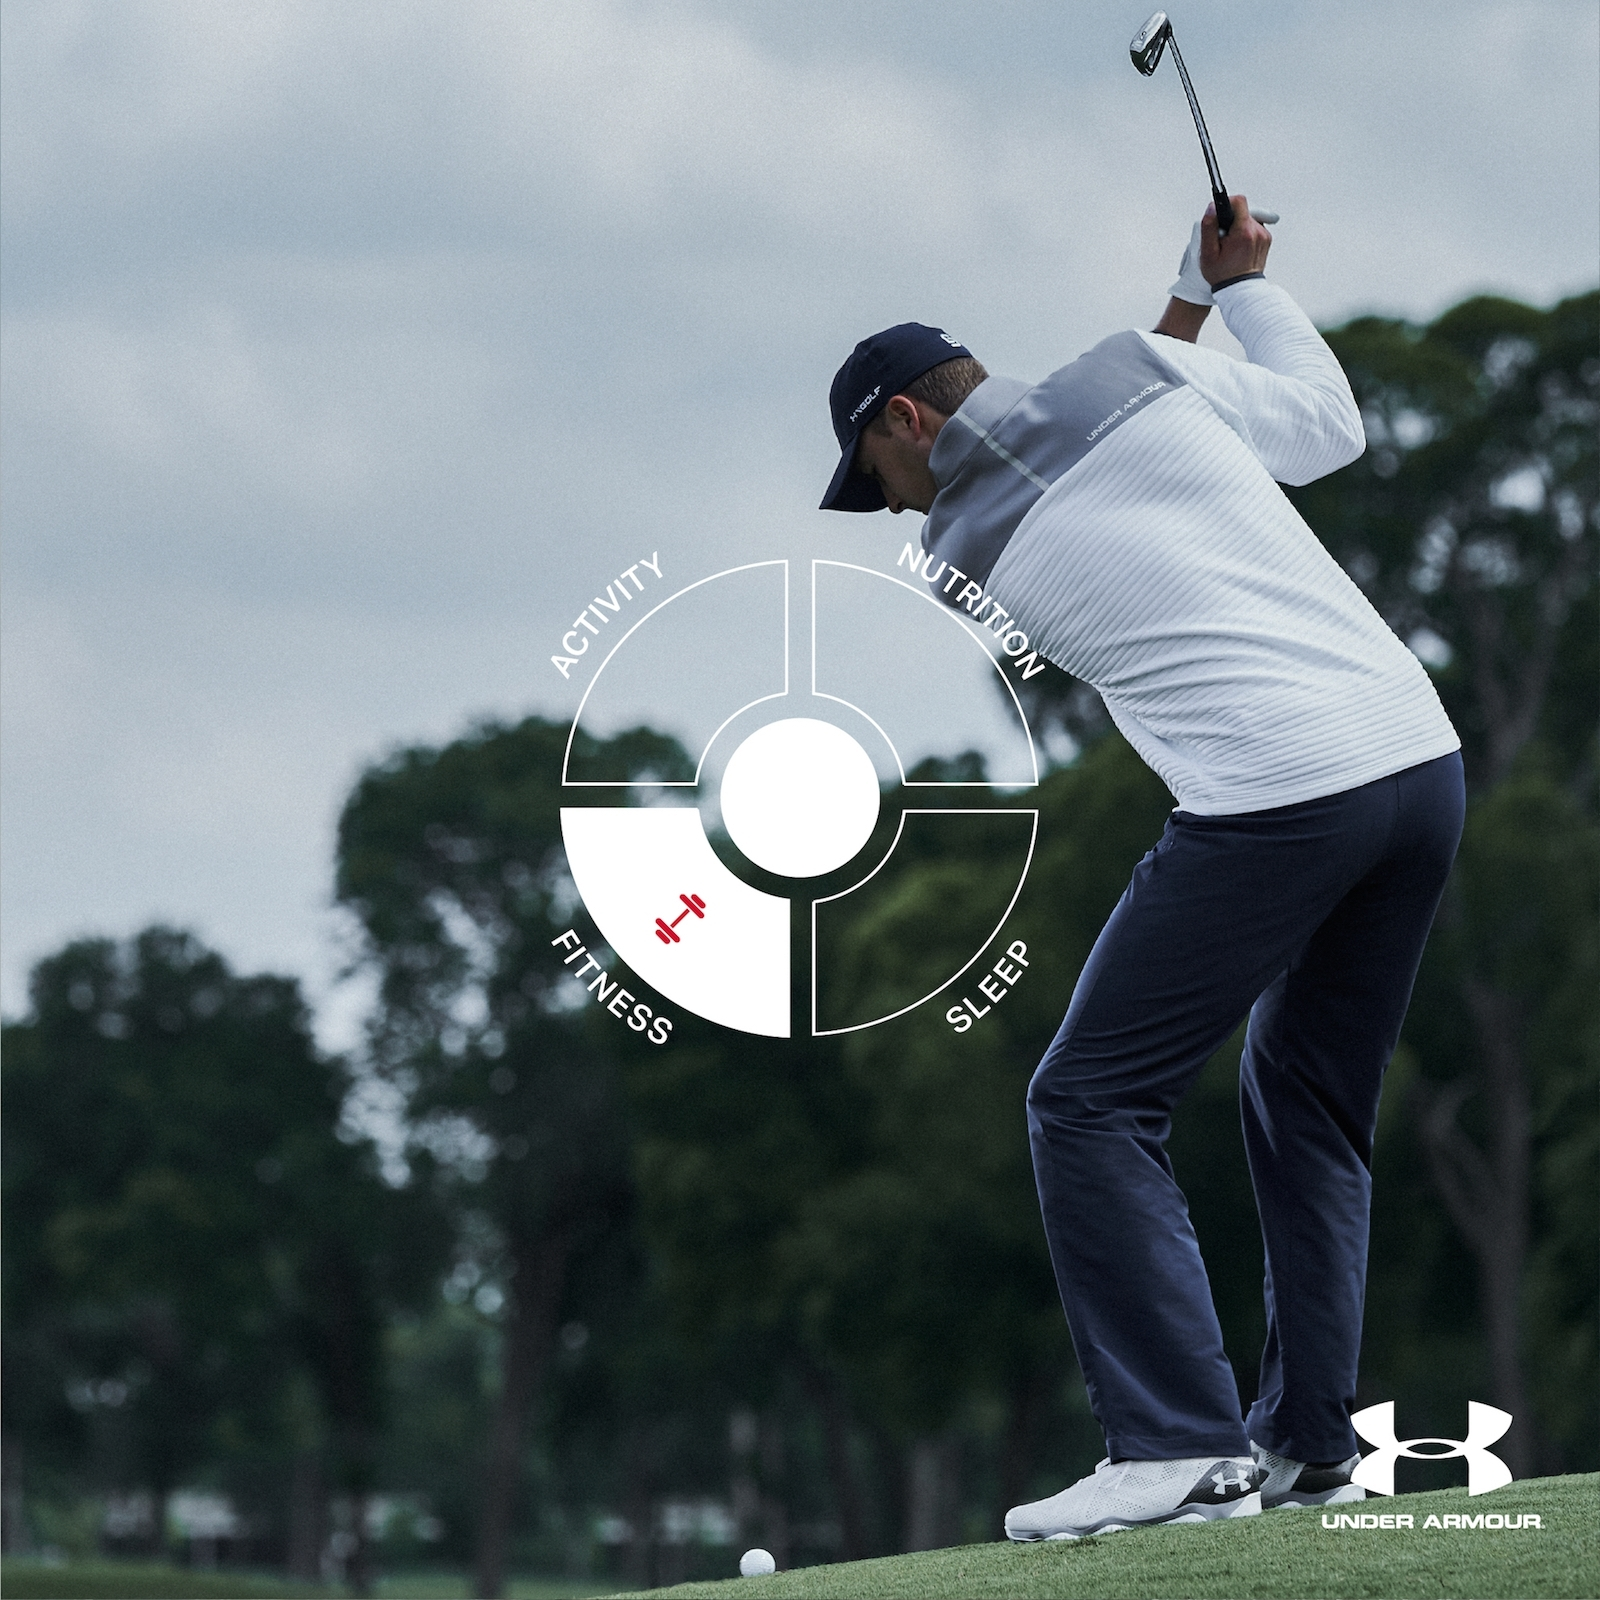 under armour showcases the first smart golf shoe - weartesters